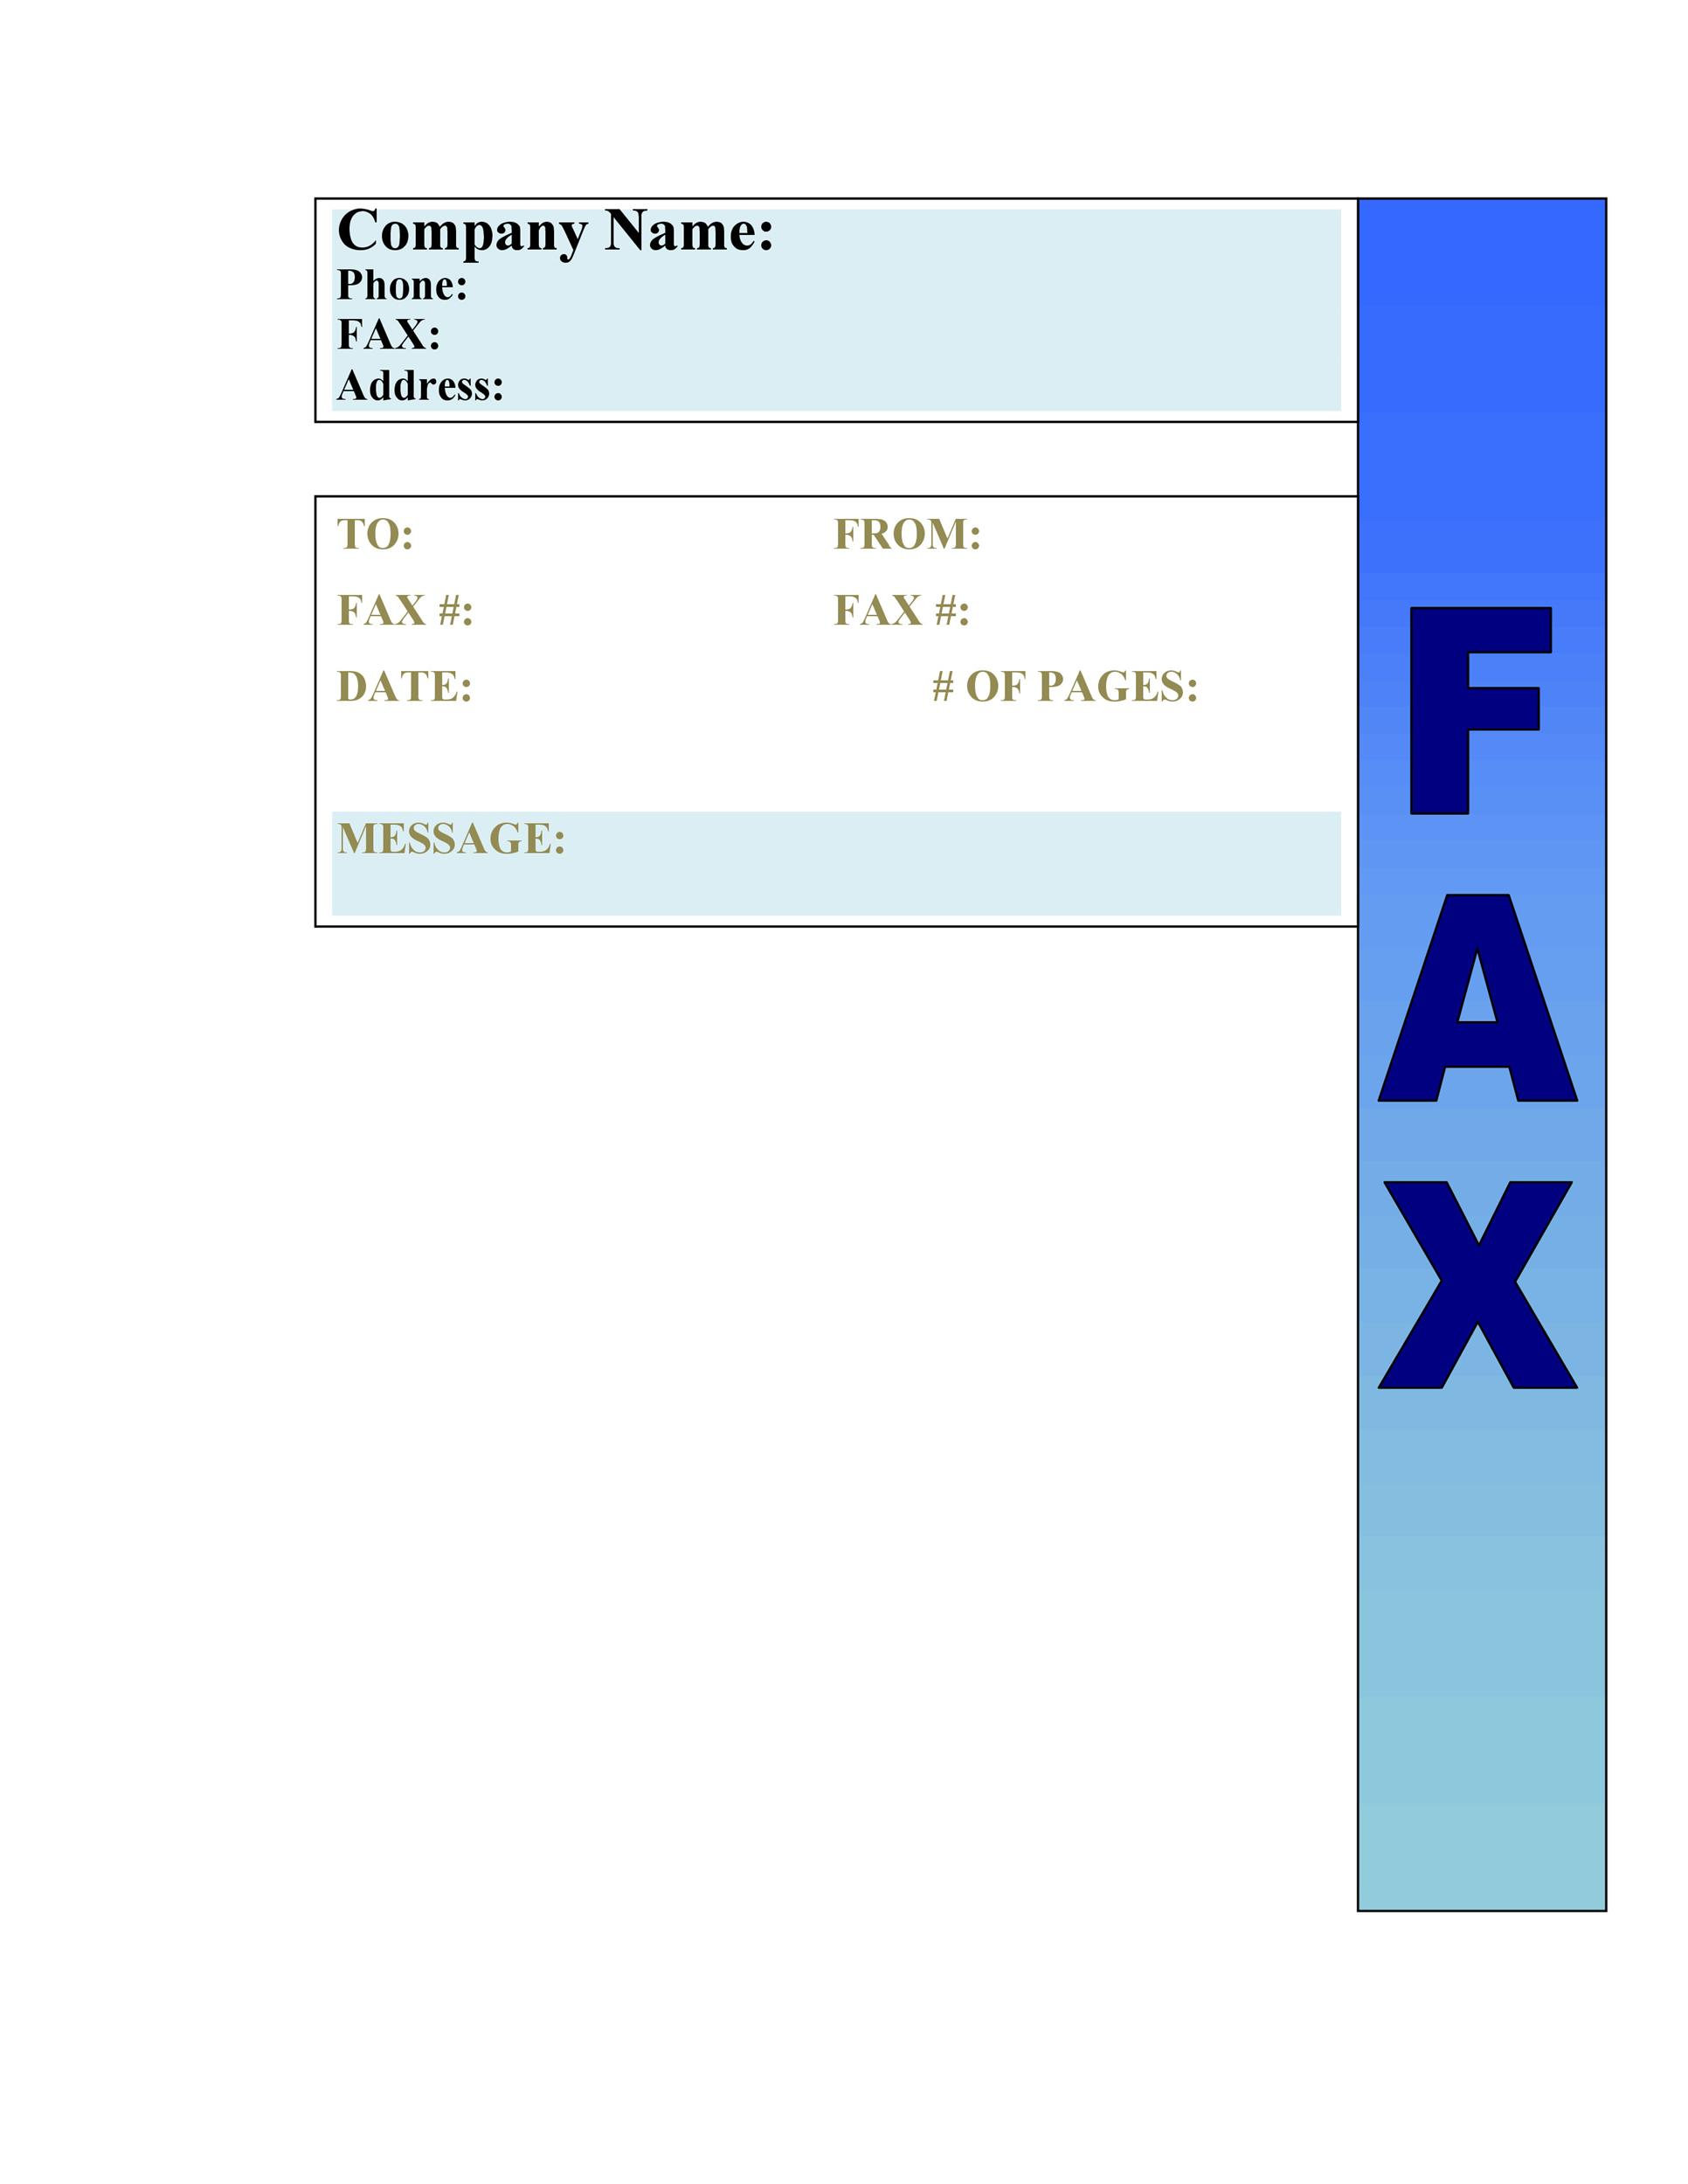 Fax Cover Sheet Template 37